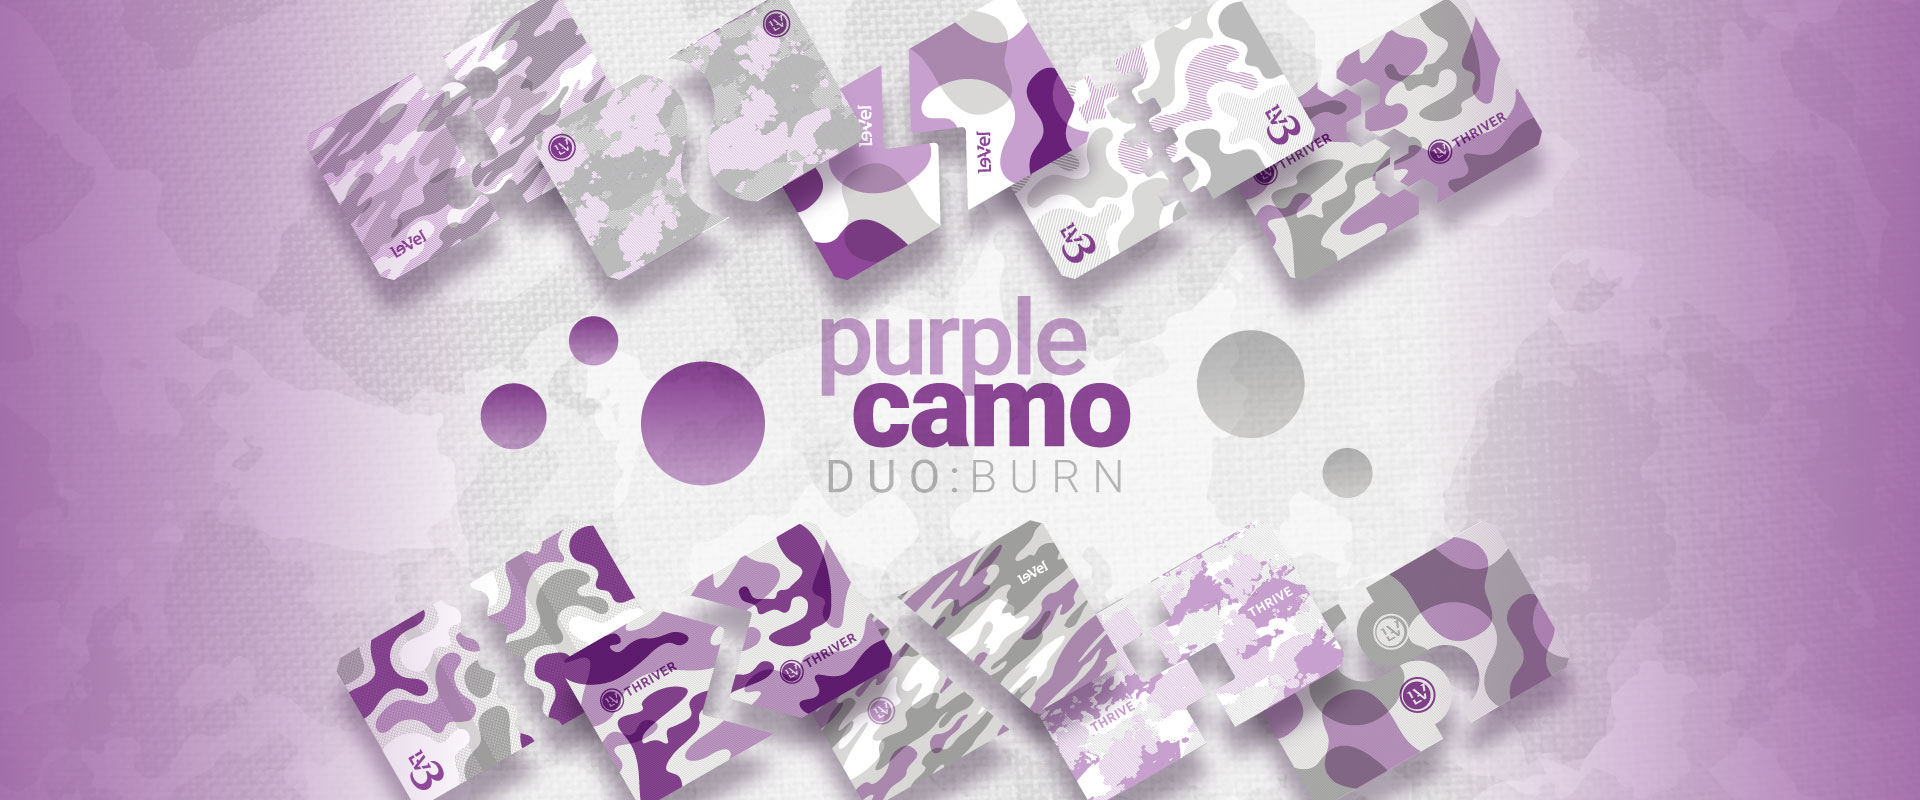 THRIVE Plus - DFT DUO BURN PURPLE CAMO